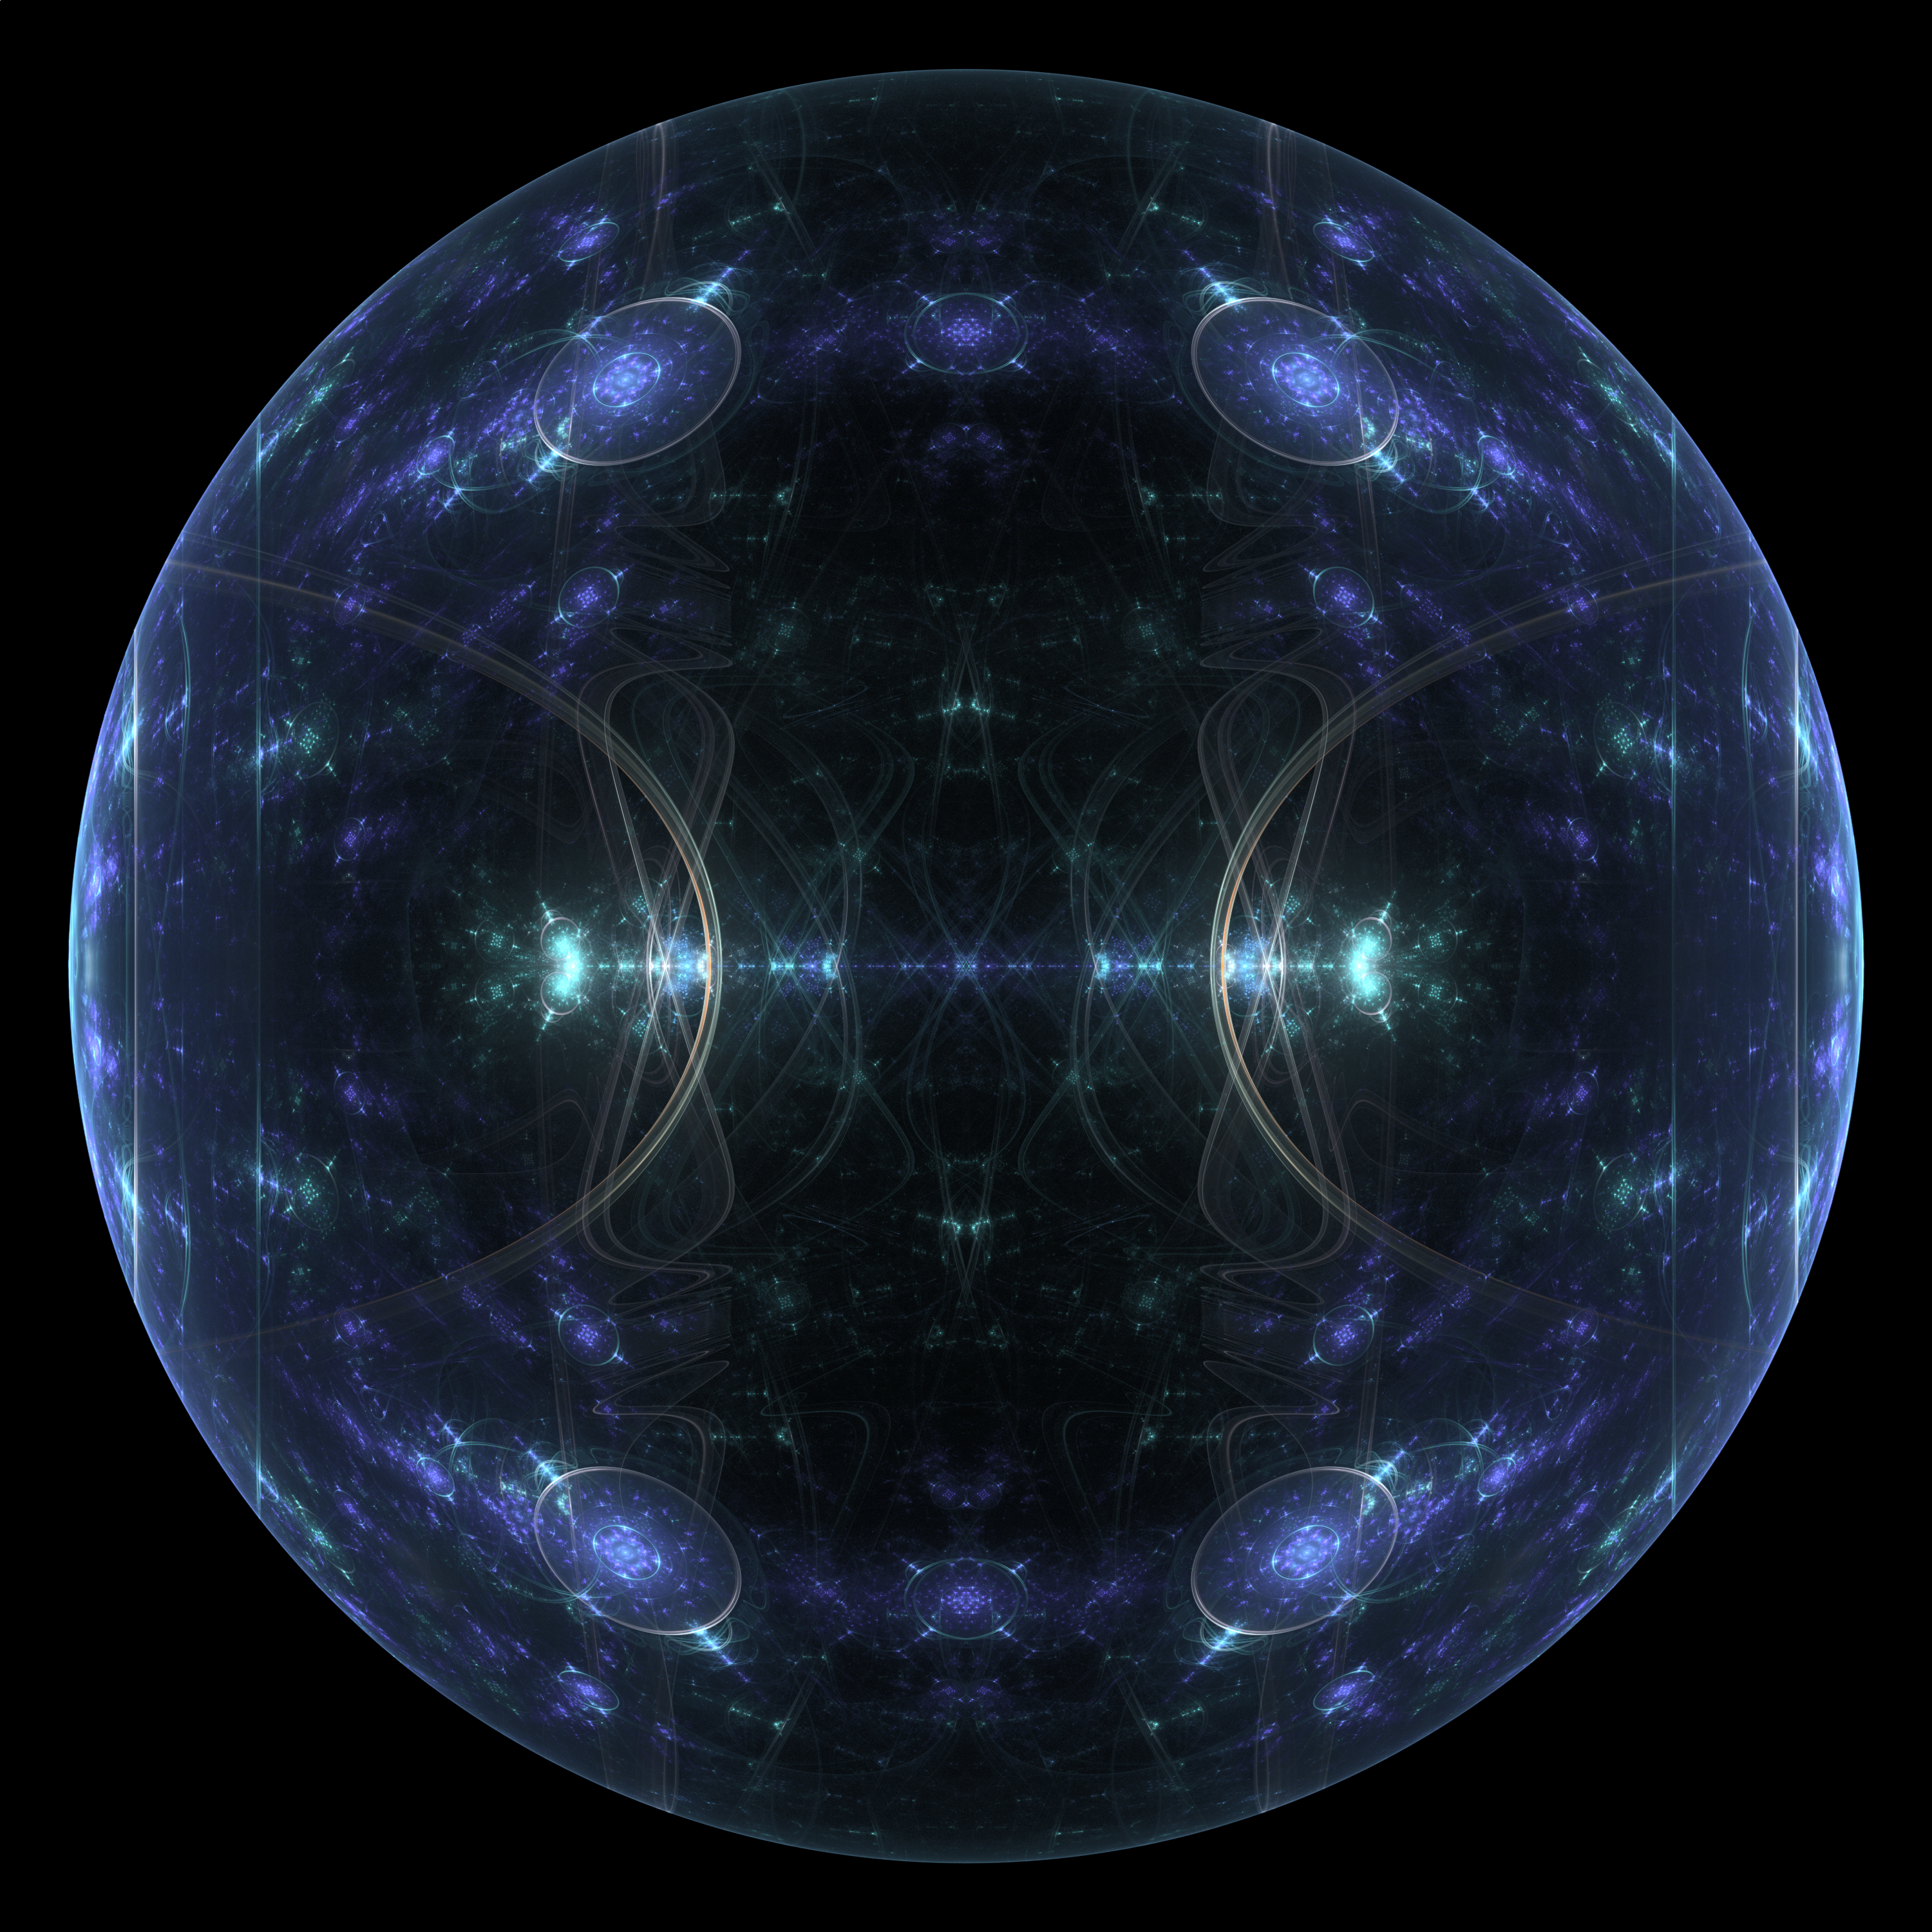 Music of the Spheres by JahPickney on deviantART